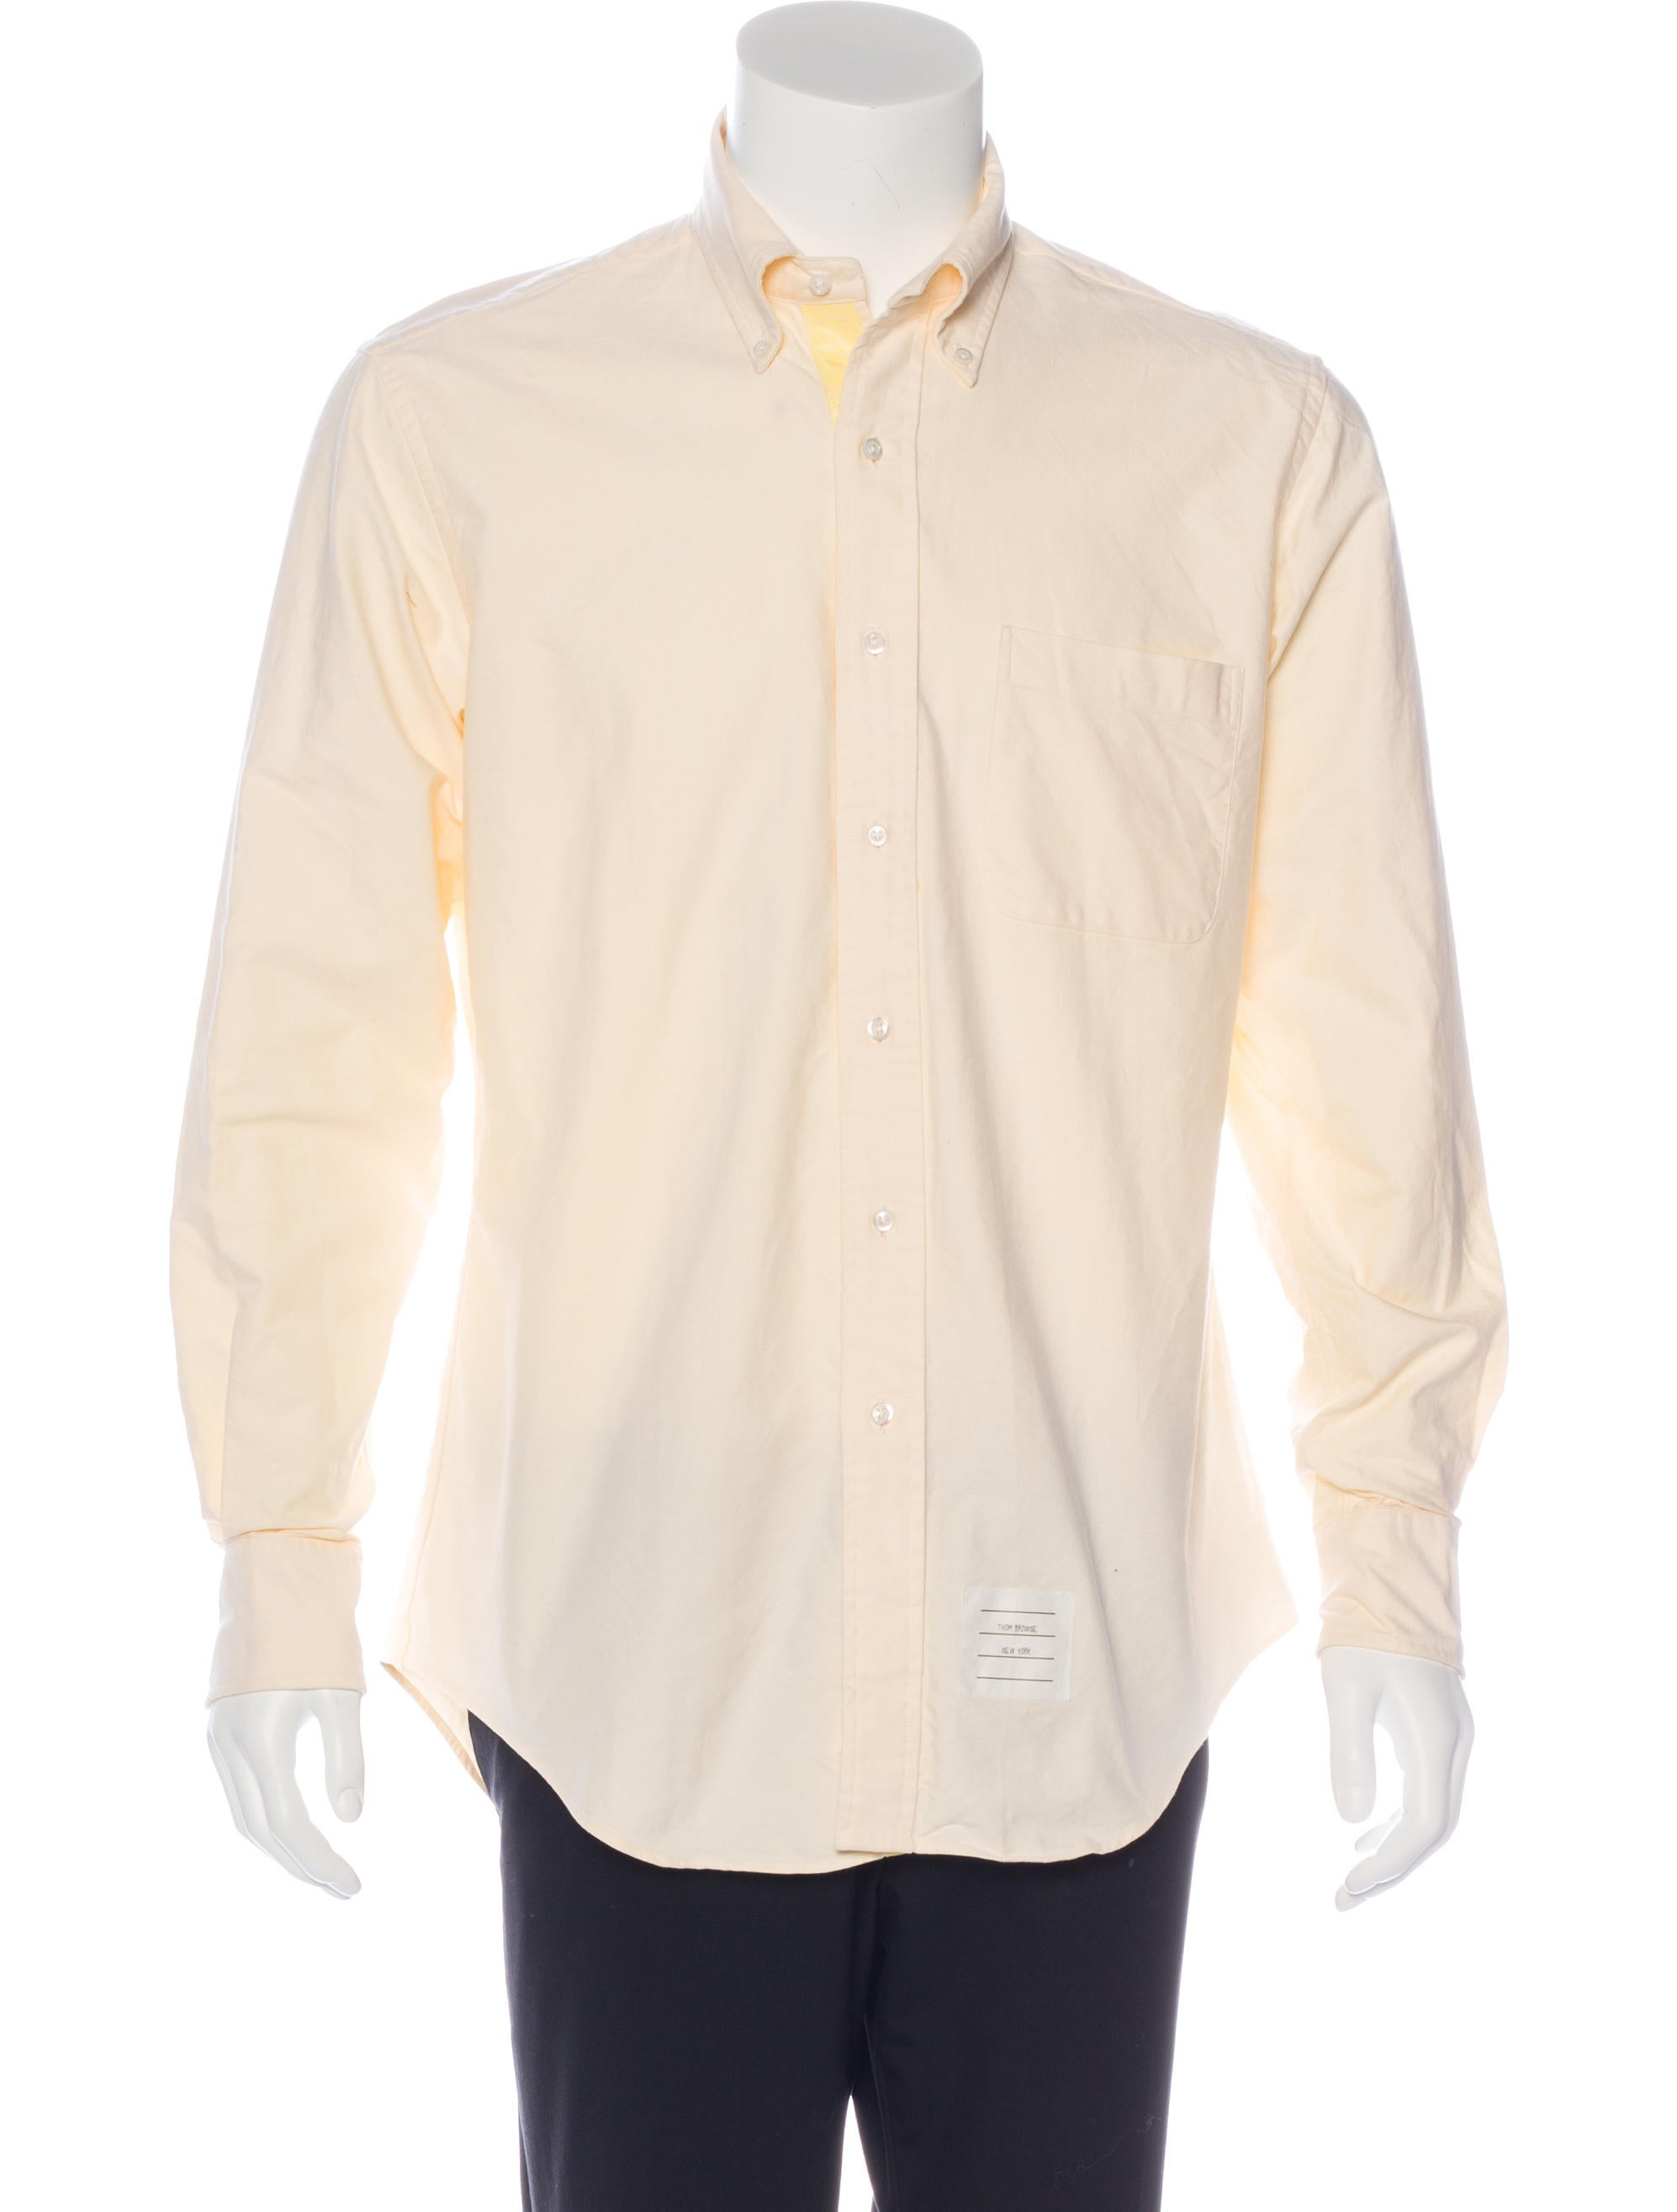 Thom browne woven oxford shirt w tags clothing for Thom browne shirt sale